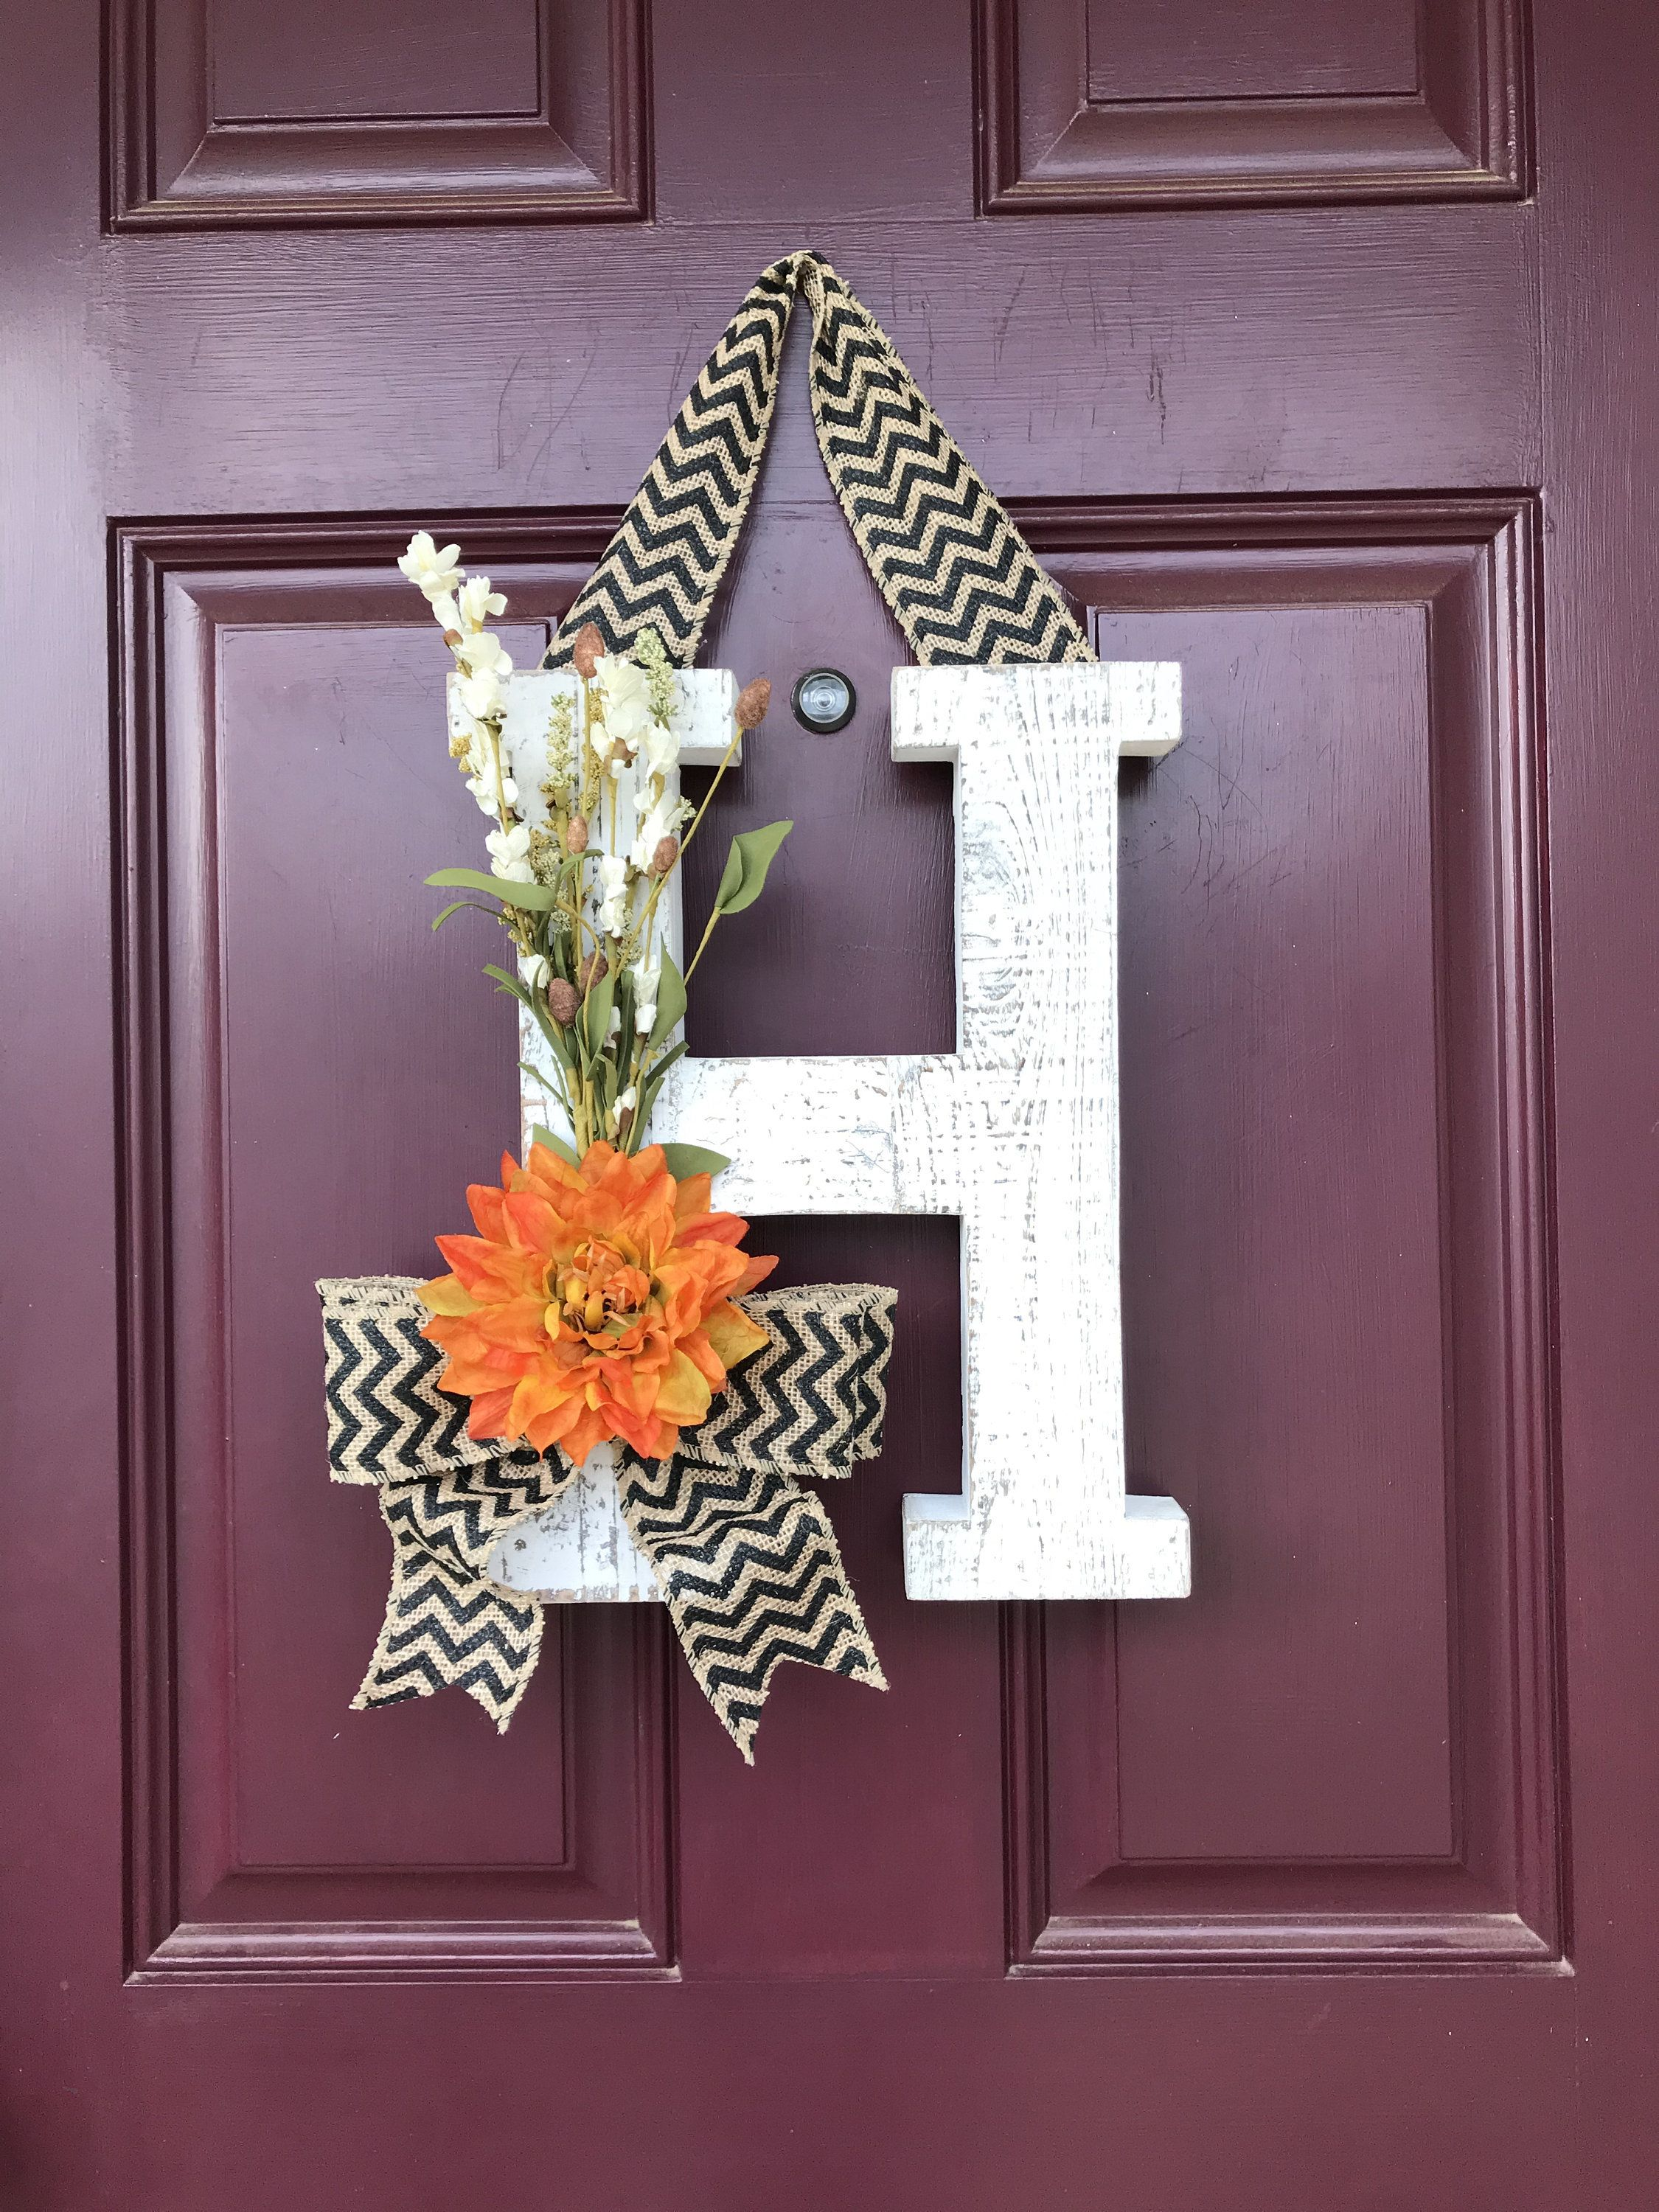 Fall Front Door Wreath Whitewashed Letter Fall Letter Autumn Door Decor Fall Wreath Fall Decor Autumn Wreath Front Door Decor Wreath Autumn Wreaths For Front Door Easy Fall Wreaths Wreaths For